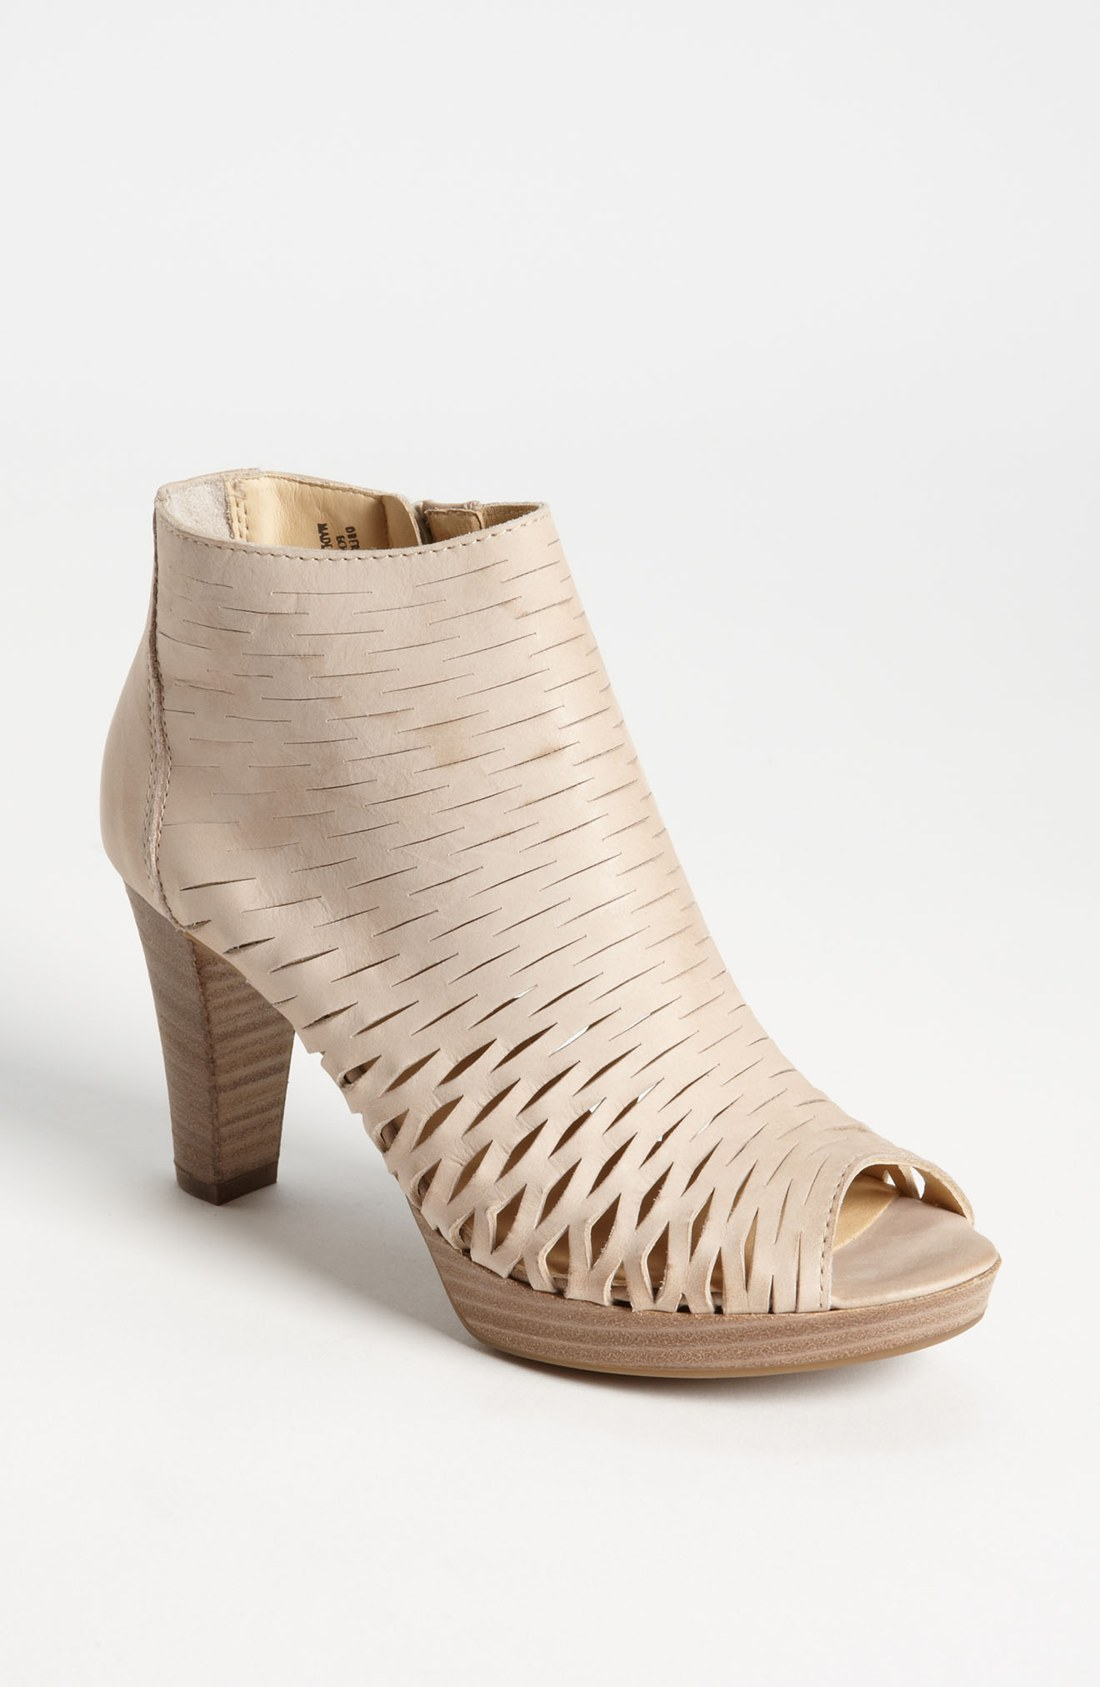 Paul Green Pandora Peep Toe Bootie In Beige Cream Lyst